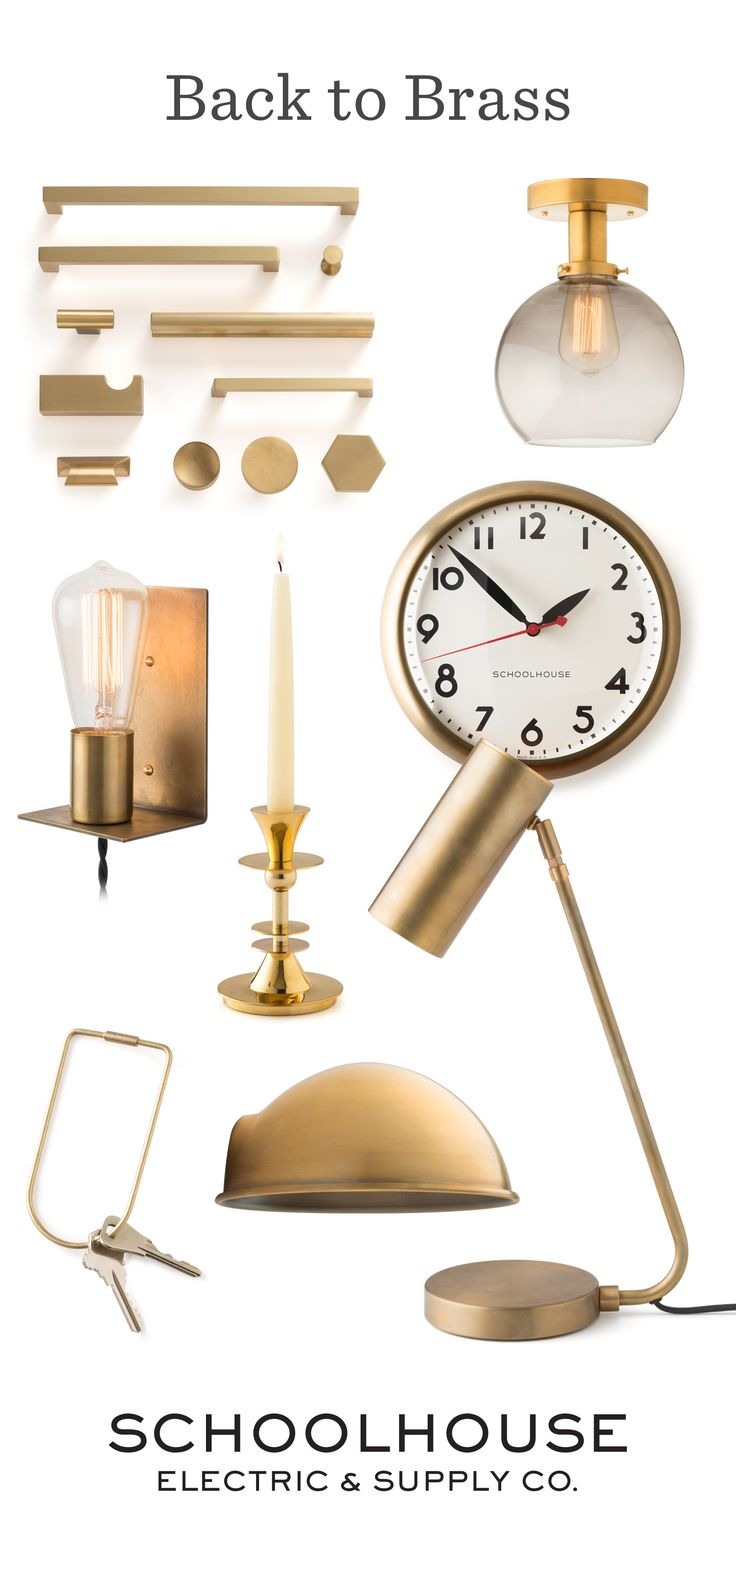 Brass favorites from Schoolhouse Electric & Supply Co. | Shop brass accessories, lighting, hardware and more for your home | #backtobrass